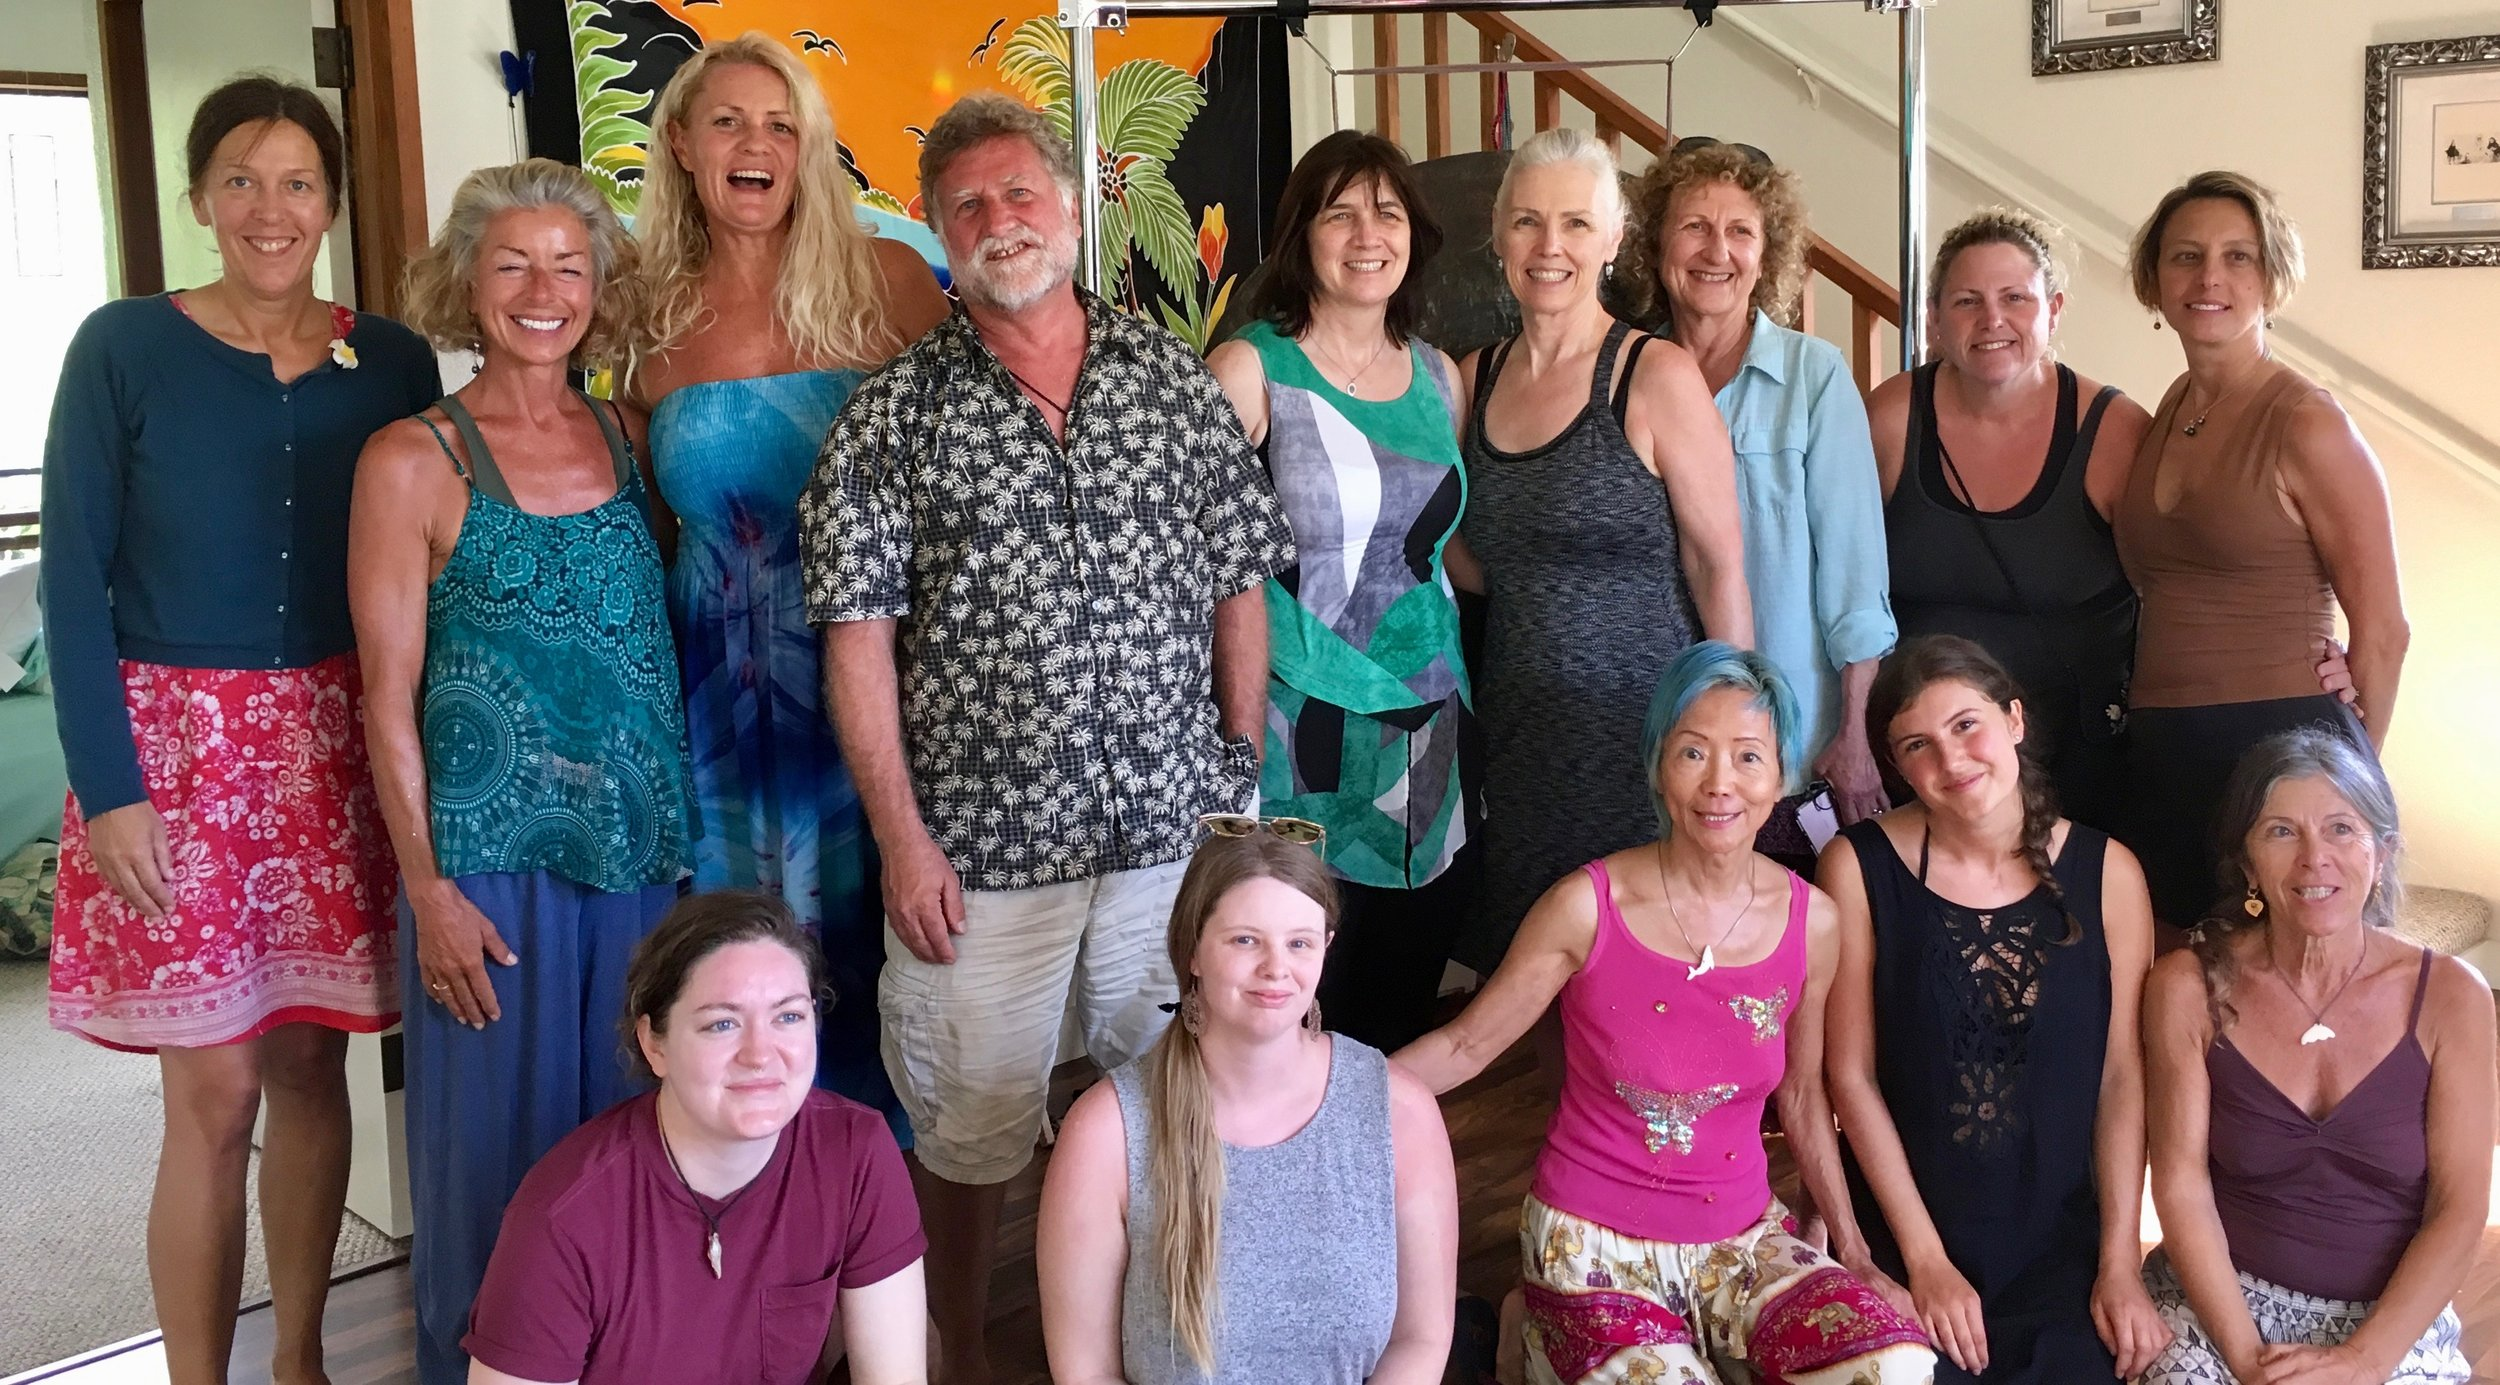 The happy group of gong bathers on march 16, 2019 on the big island, hawaii. i have blue hair :)